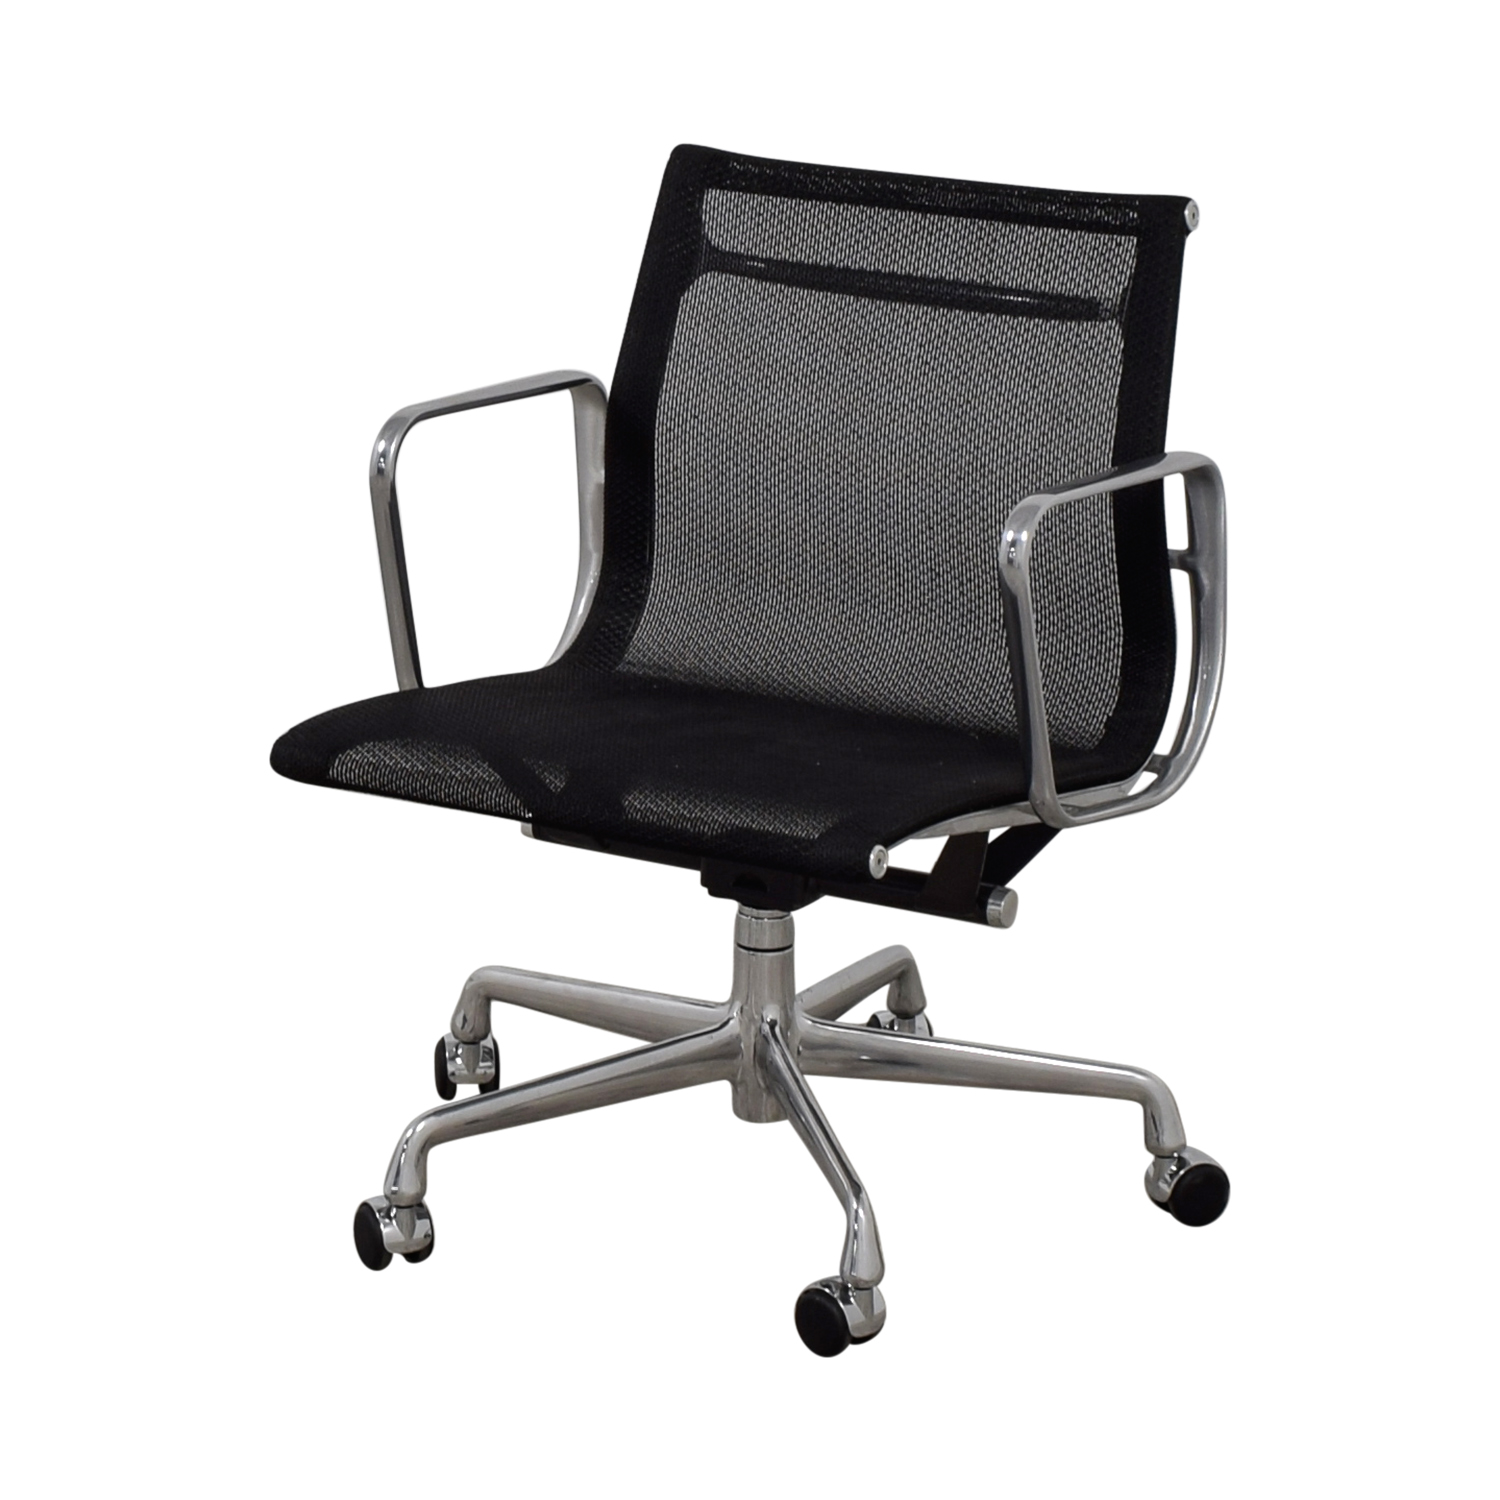 Eames Aluminum Group Management Mesh Chair Eames Aluminum Group